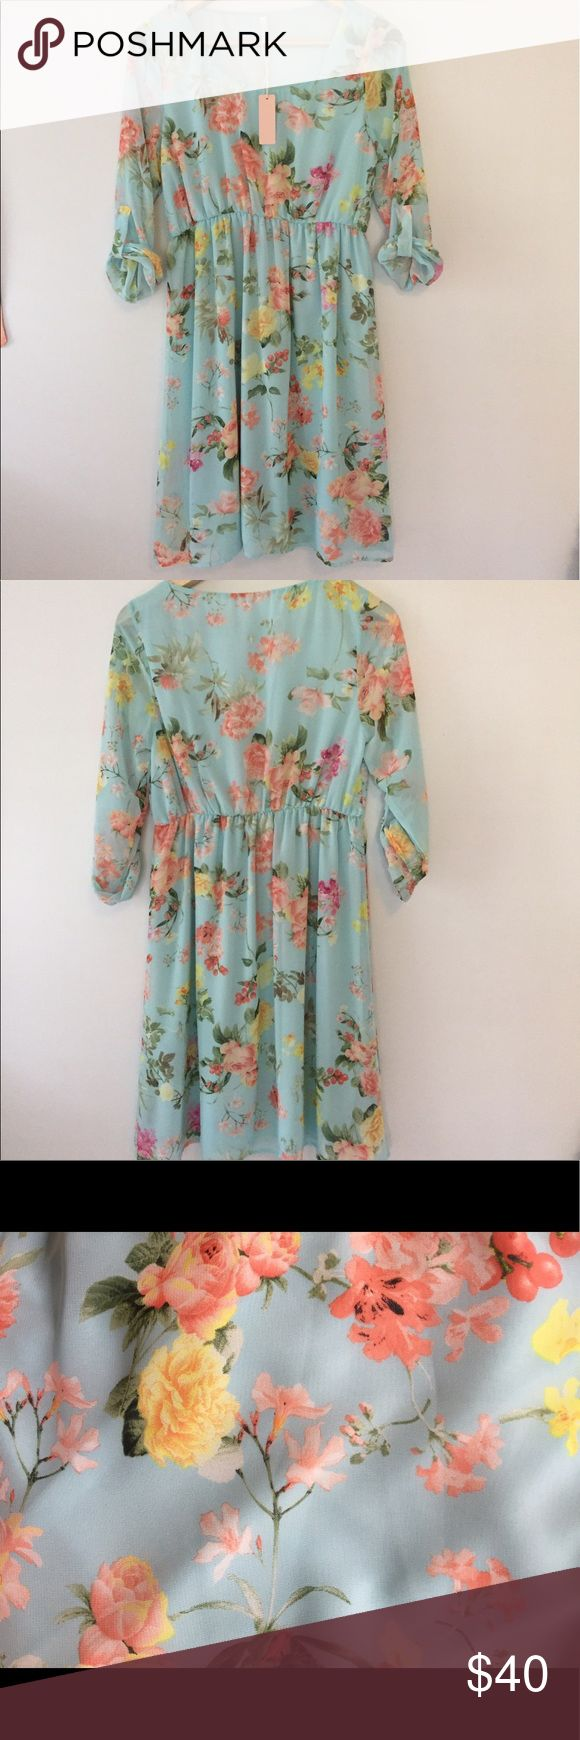 Pink Blush floral maternity dress NWT! Gorgeous floral maternity dress. Super comfortable and  flowy. Sleeves are sheer and 3/4 length. Perfect baby shower dress! 25 inches from bust to hem. NWT never worn. Pink Blush Dresses Midi